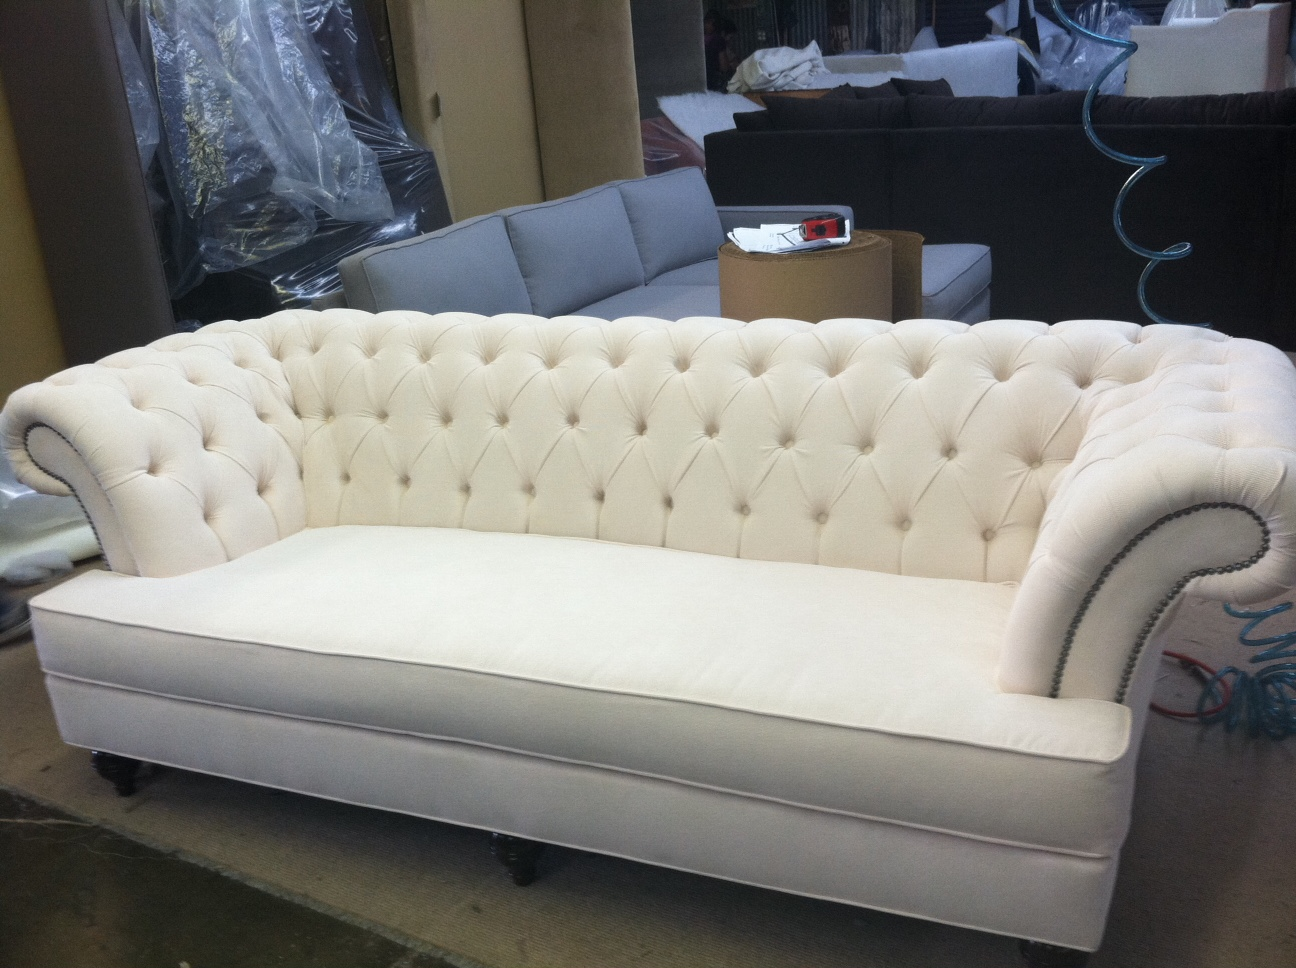 where can i donate my sofa frozen flip out target p s love this october 2011